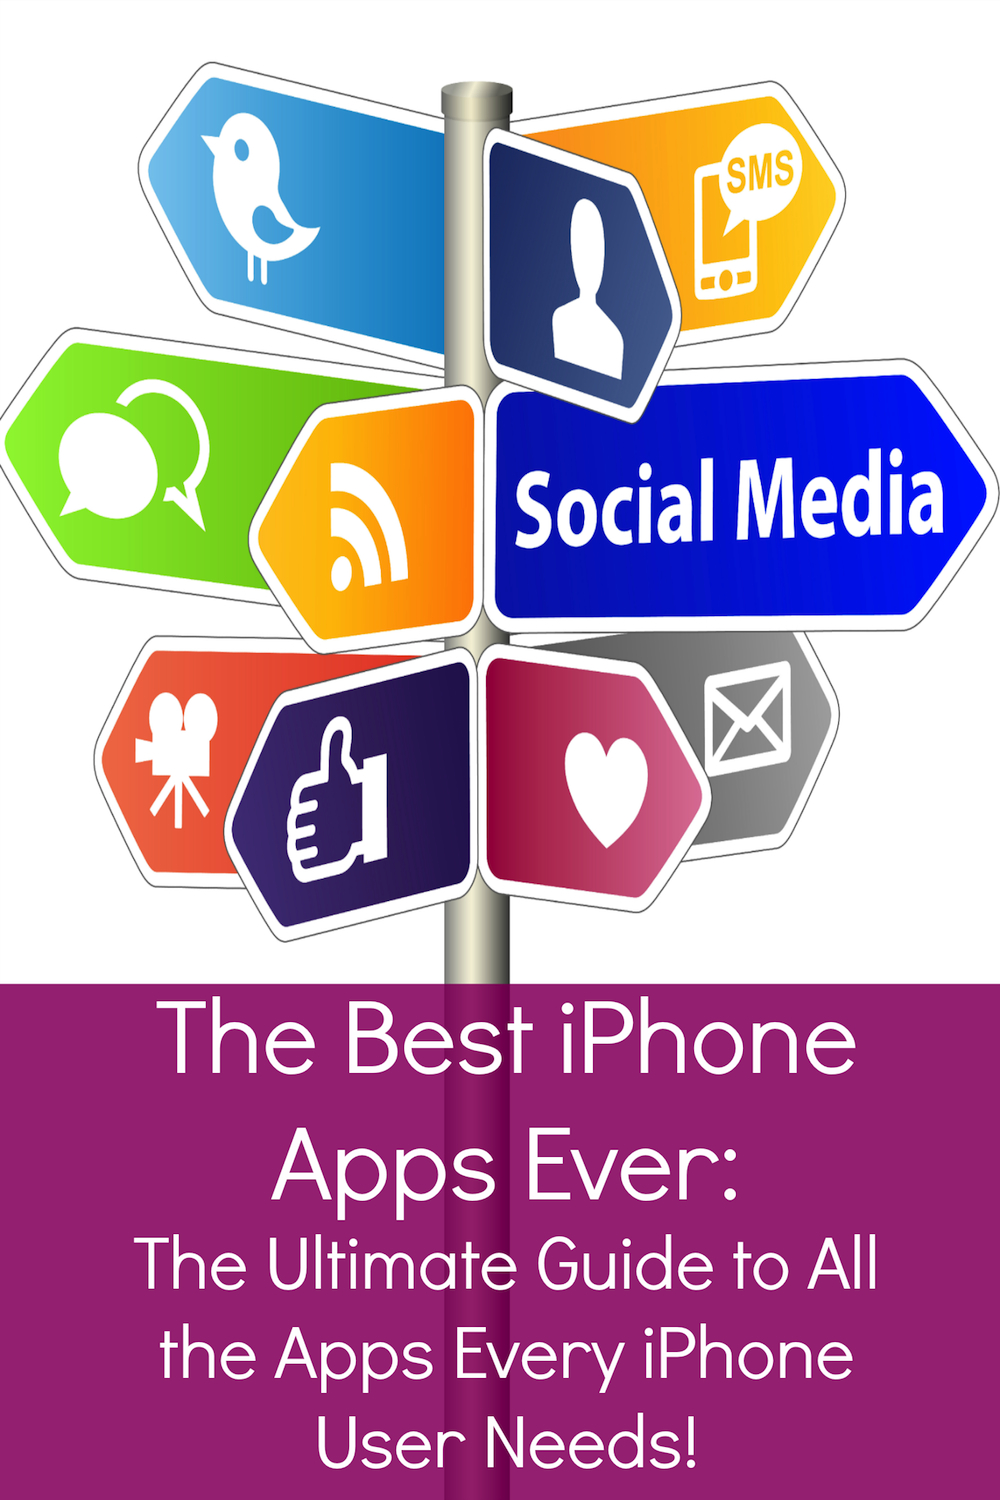 The Best iPhone Apps Ever